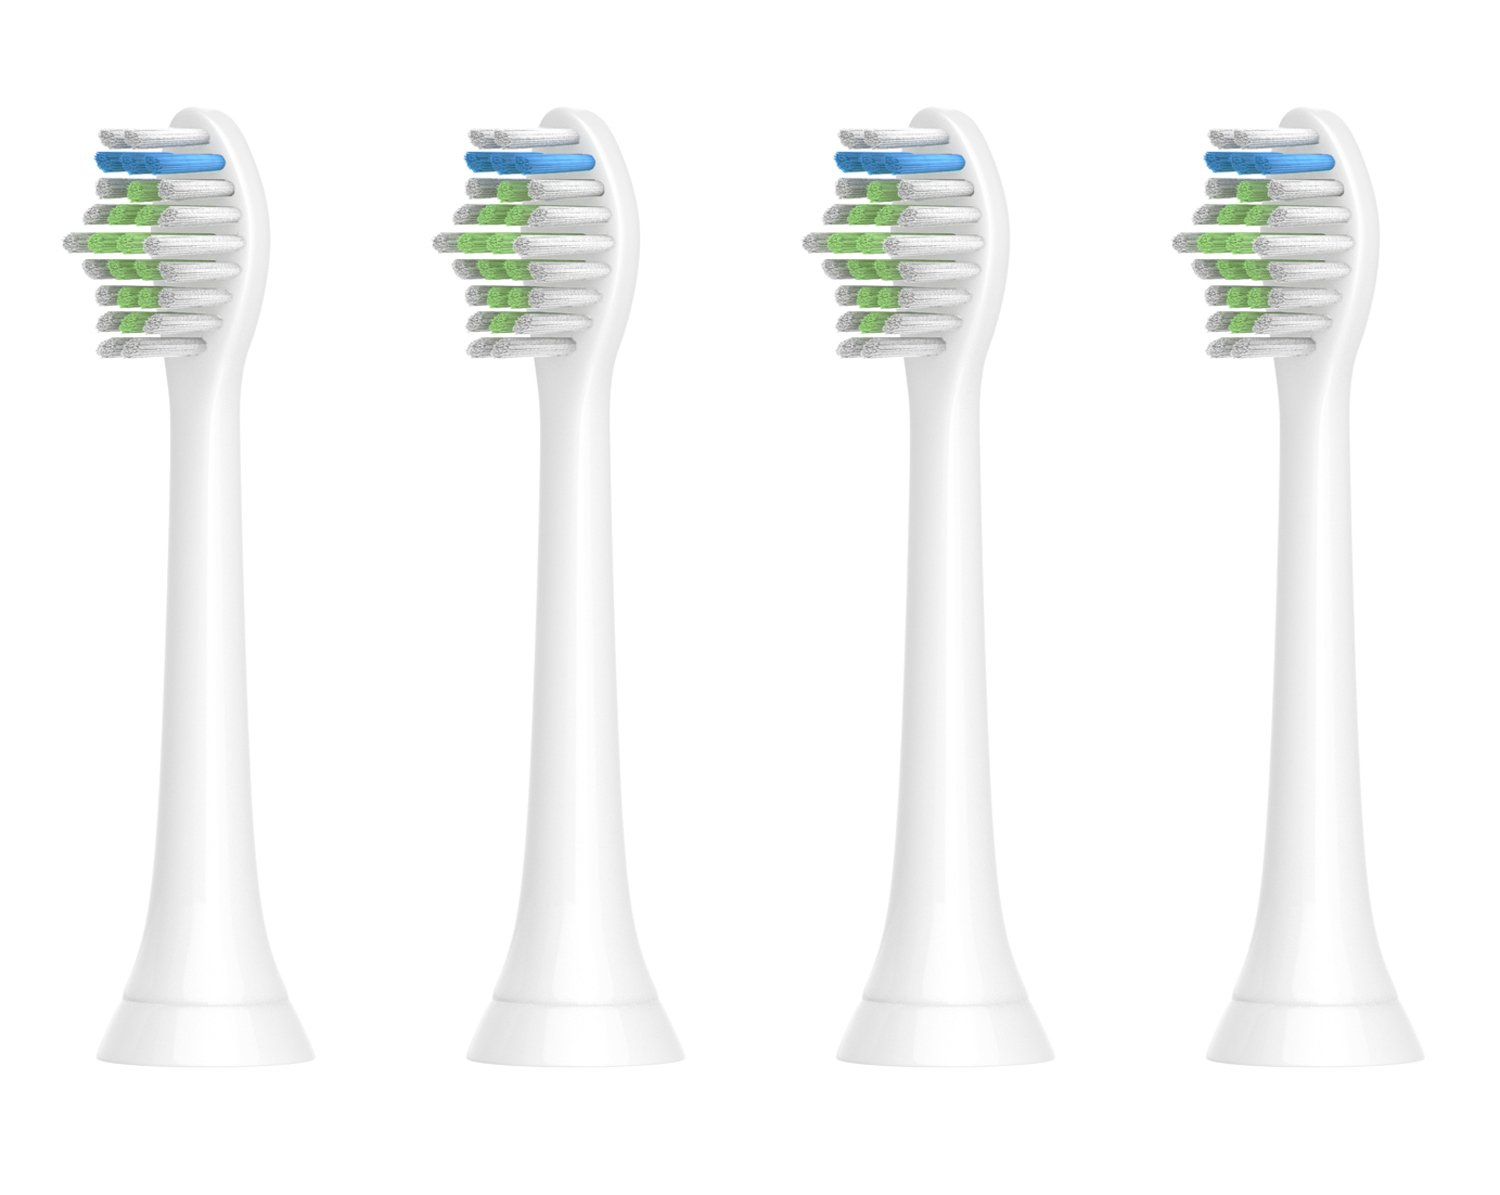 Sonicare Replacement Toothbrush Heads, 4 Pack, Fits Philips Sonicare Electric Toothbrush DiamondClean,Plaque Control,Gum Health,FlexCare,HealthyWhite,EasyClean,HydroClean,PowerUp,Sonicare for Kids